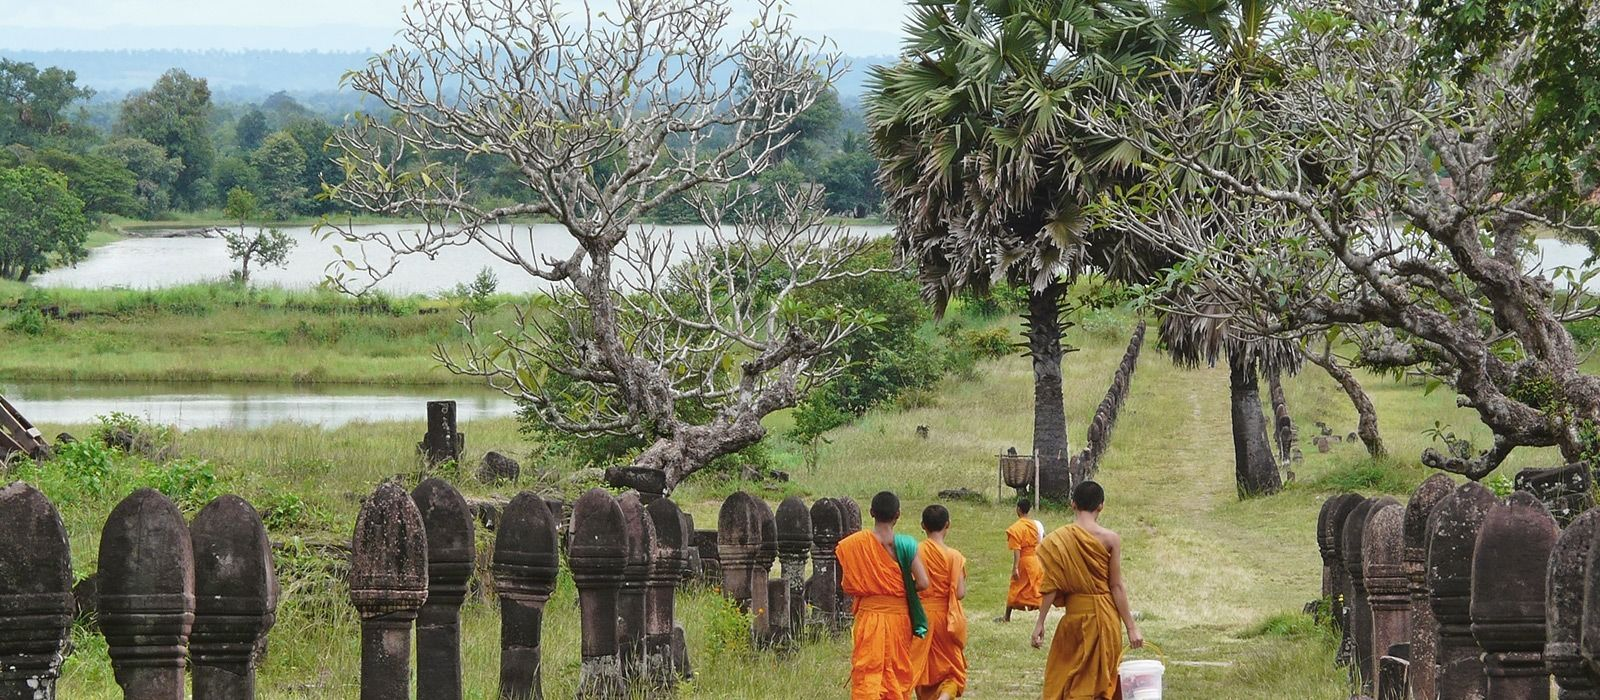 Live Laos: From Monks to Mekong Tour Trip 4